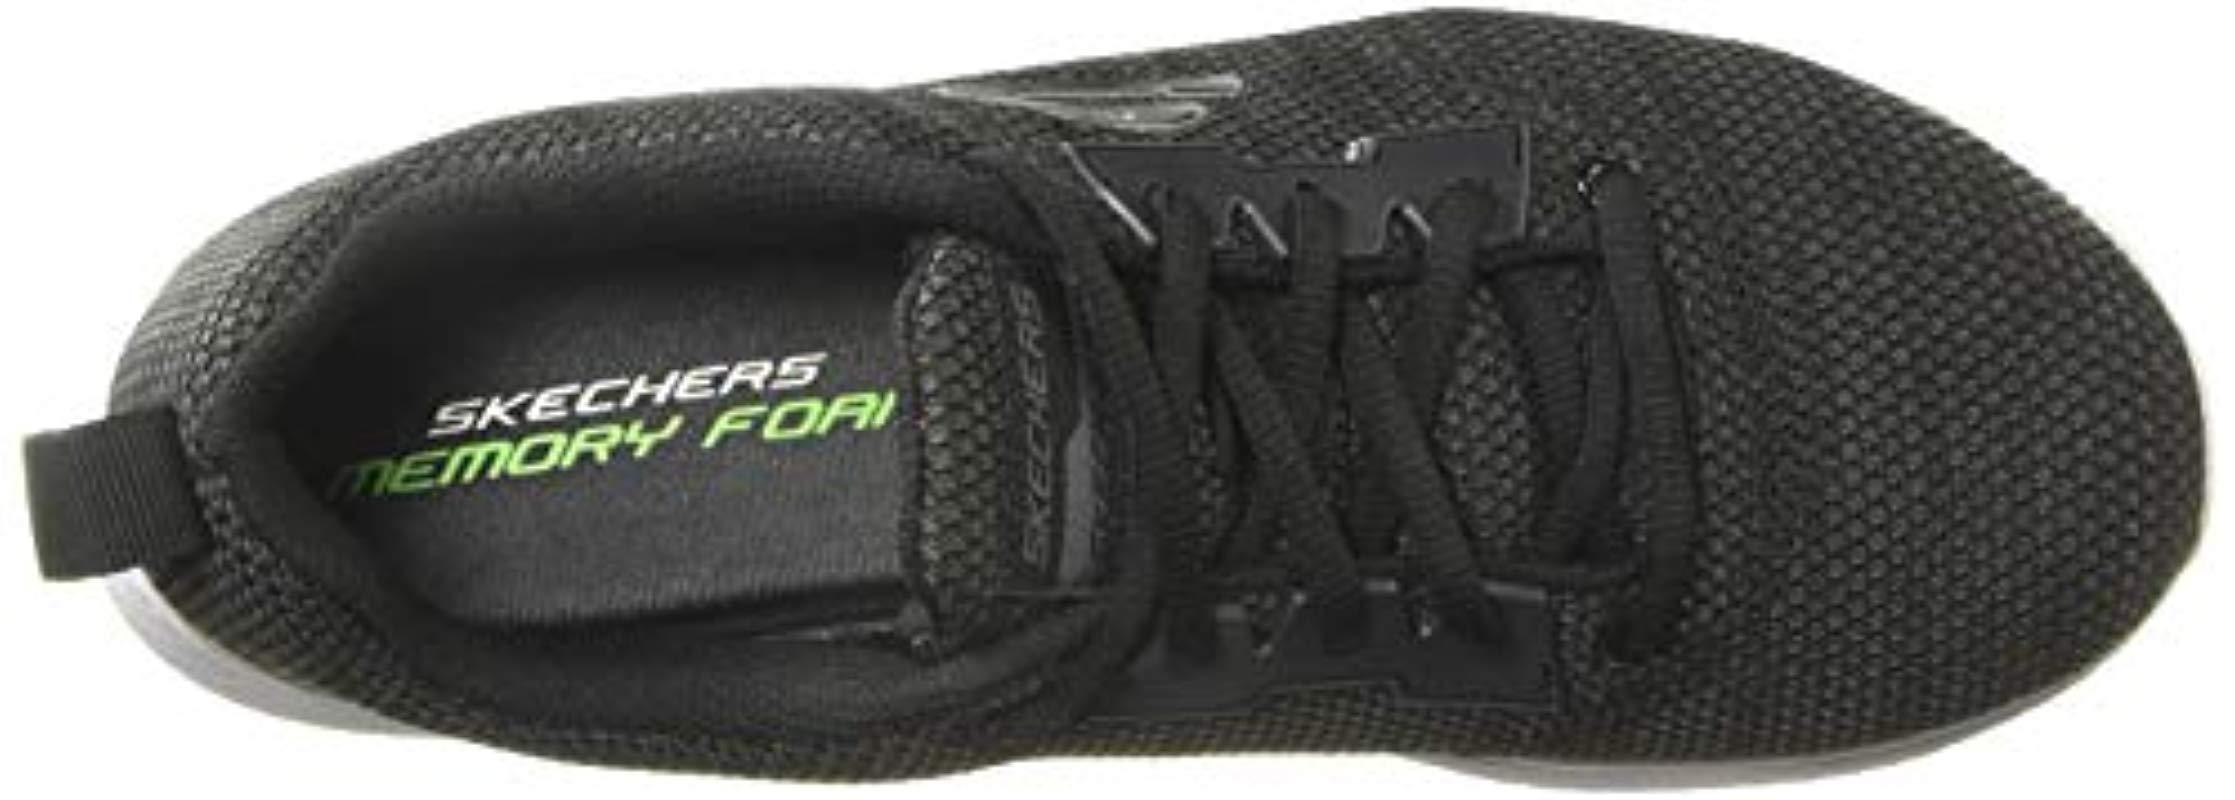 Summit Mesh Trainers Runners Lace